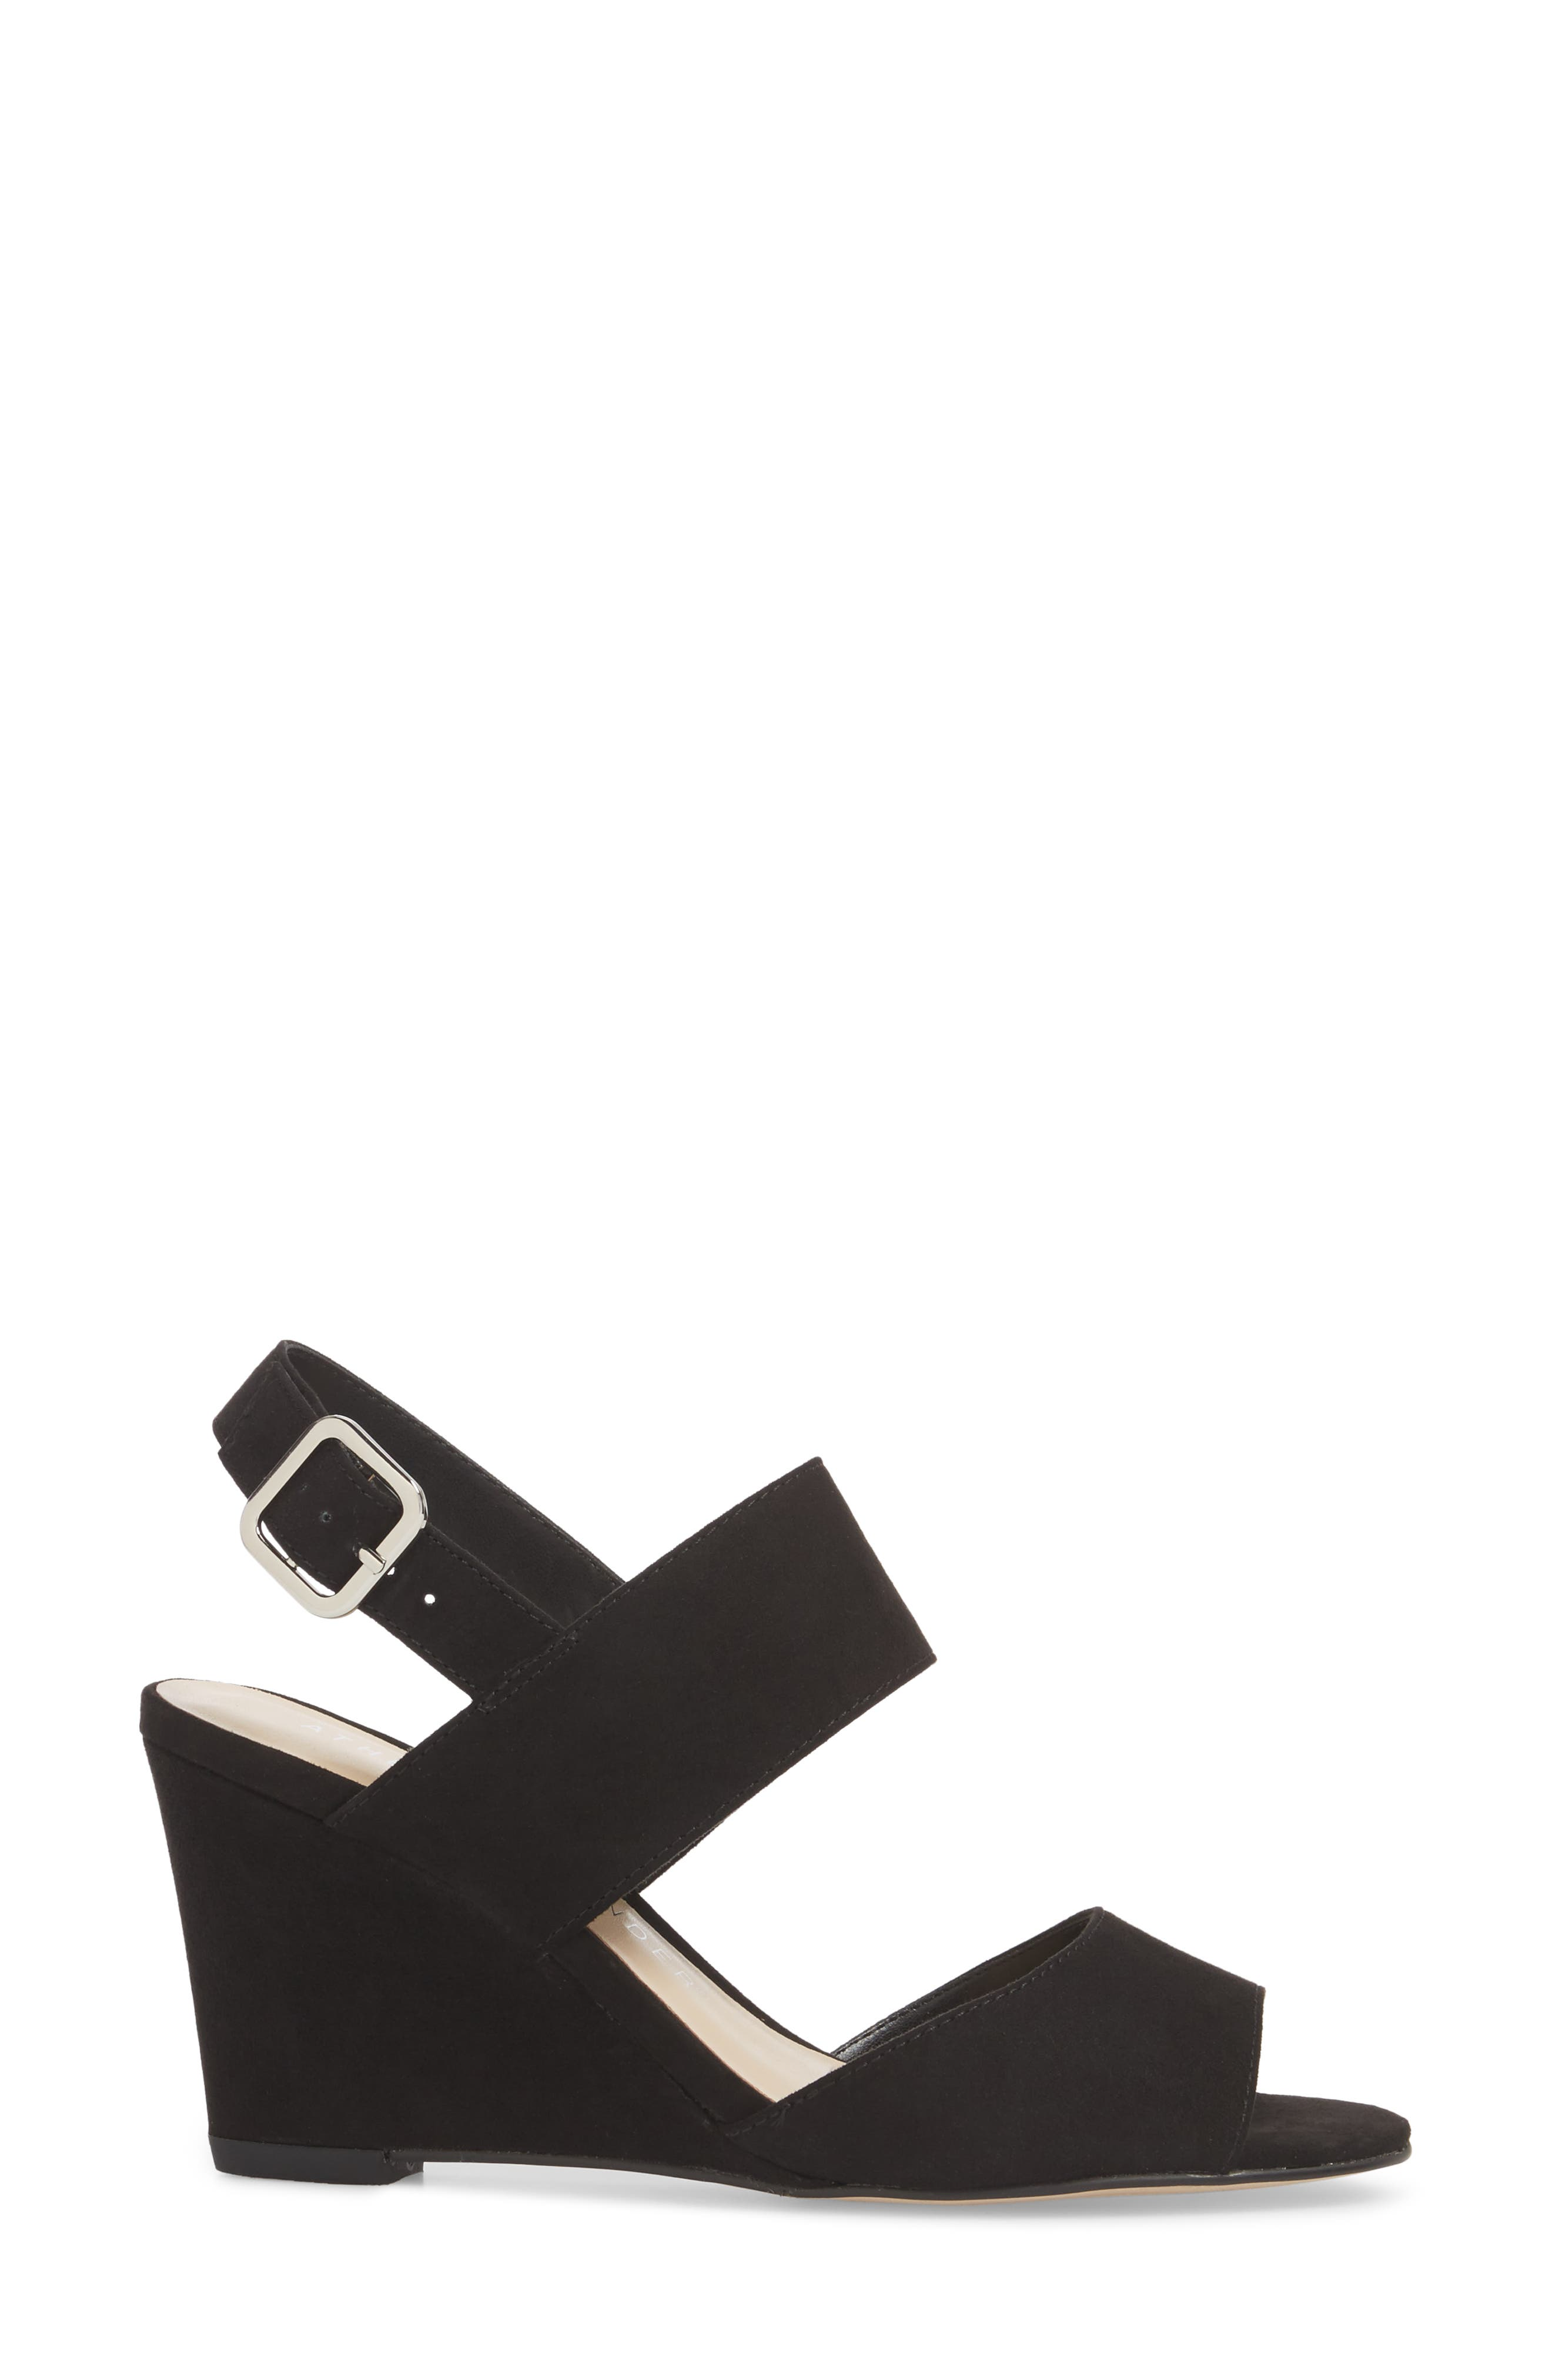 Slayte Wedge Sandal,                             Alternate thumbnail 3, color,                             BLACK FAUX SUEDE